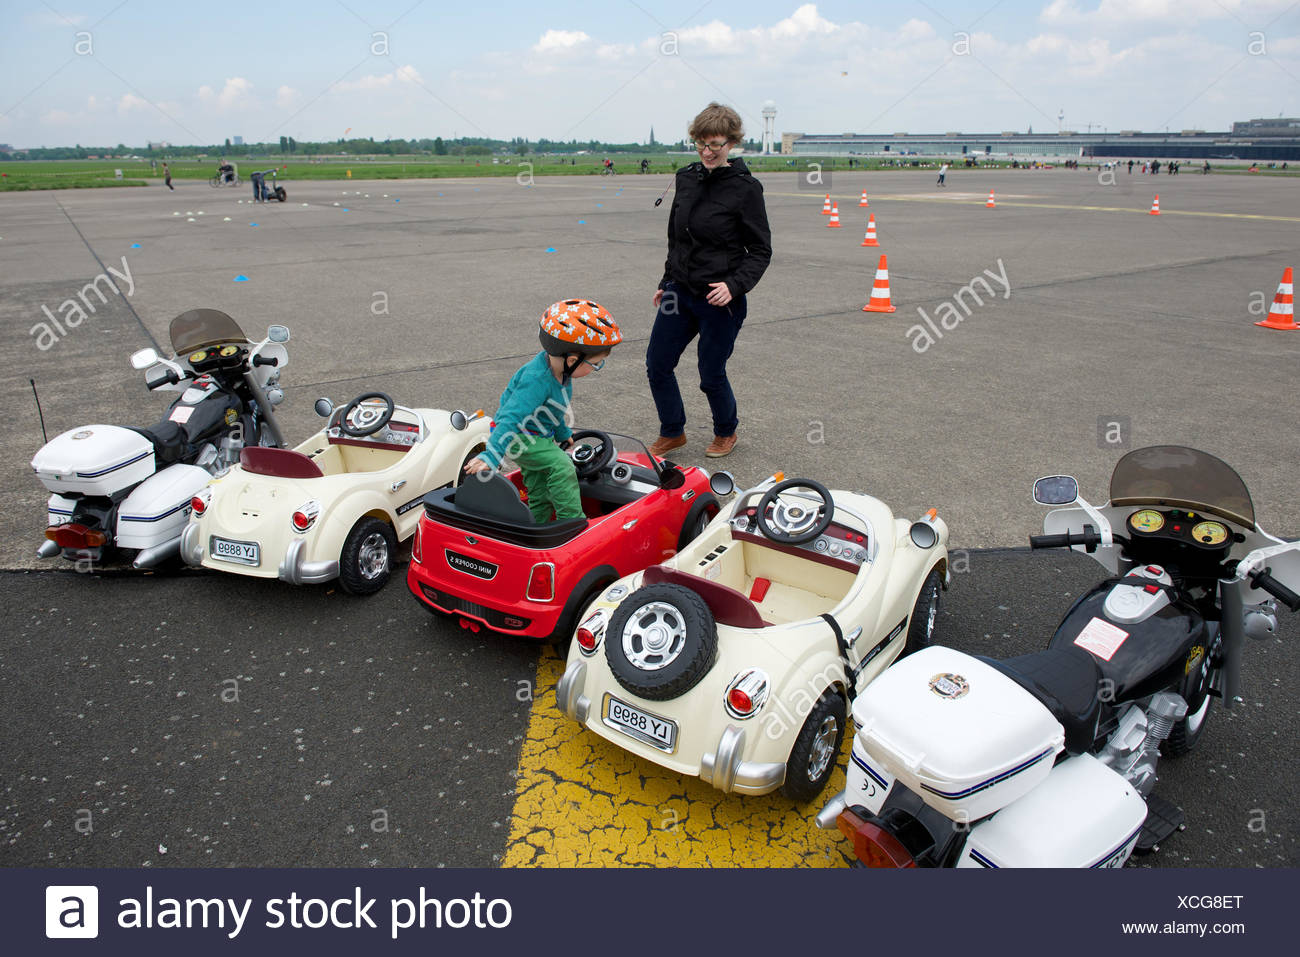 Leisure activity in a recreation park on the grounds of the no longer used Tempelhof International Airport, Berlin. - Stock Image